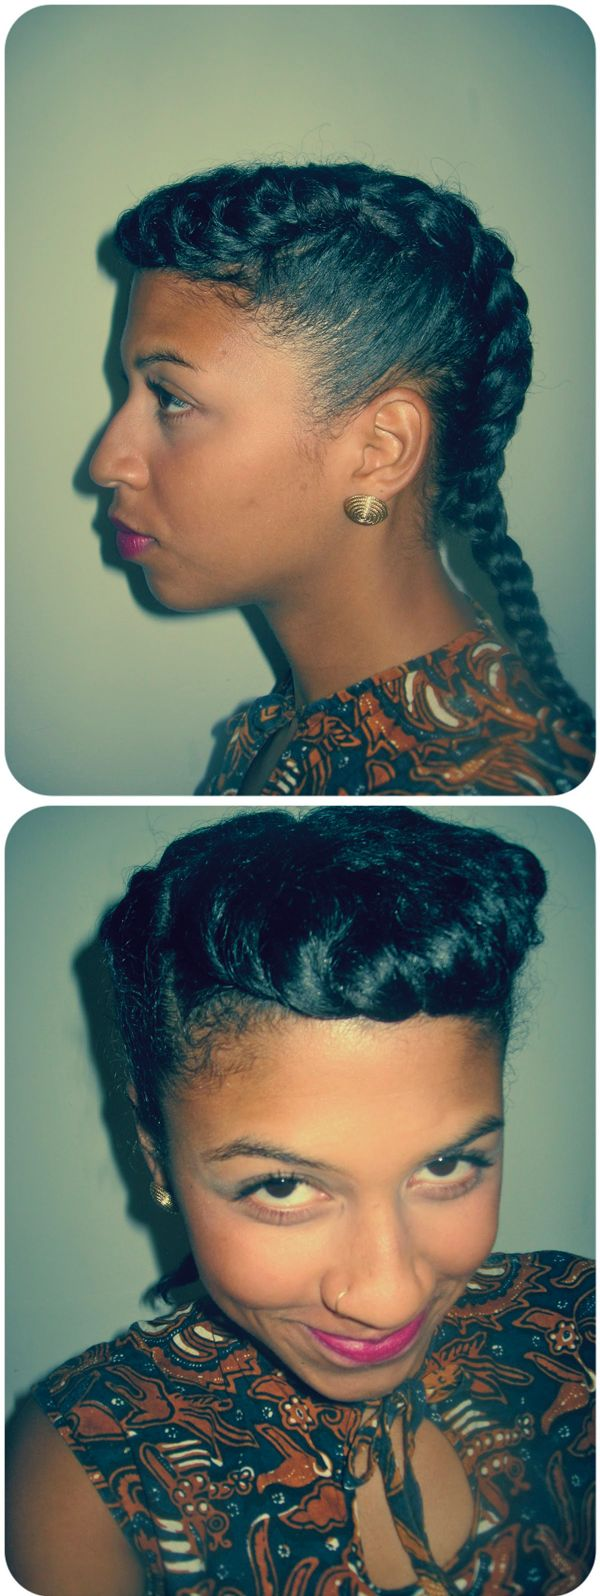 115 best natural hairstyles images on pinterest | hairstyles